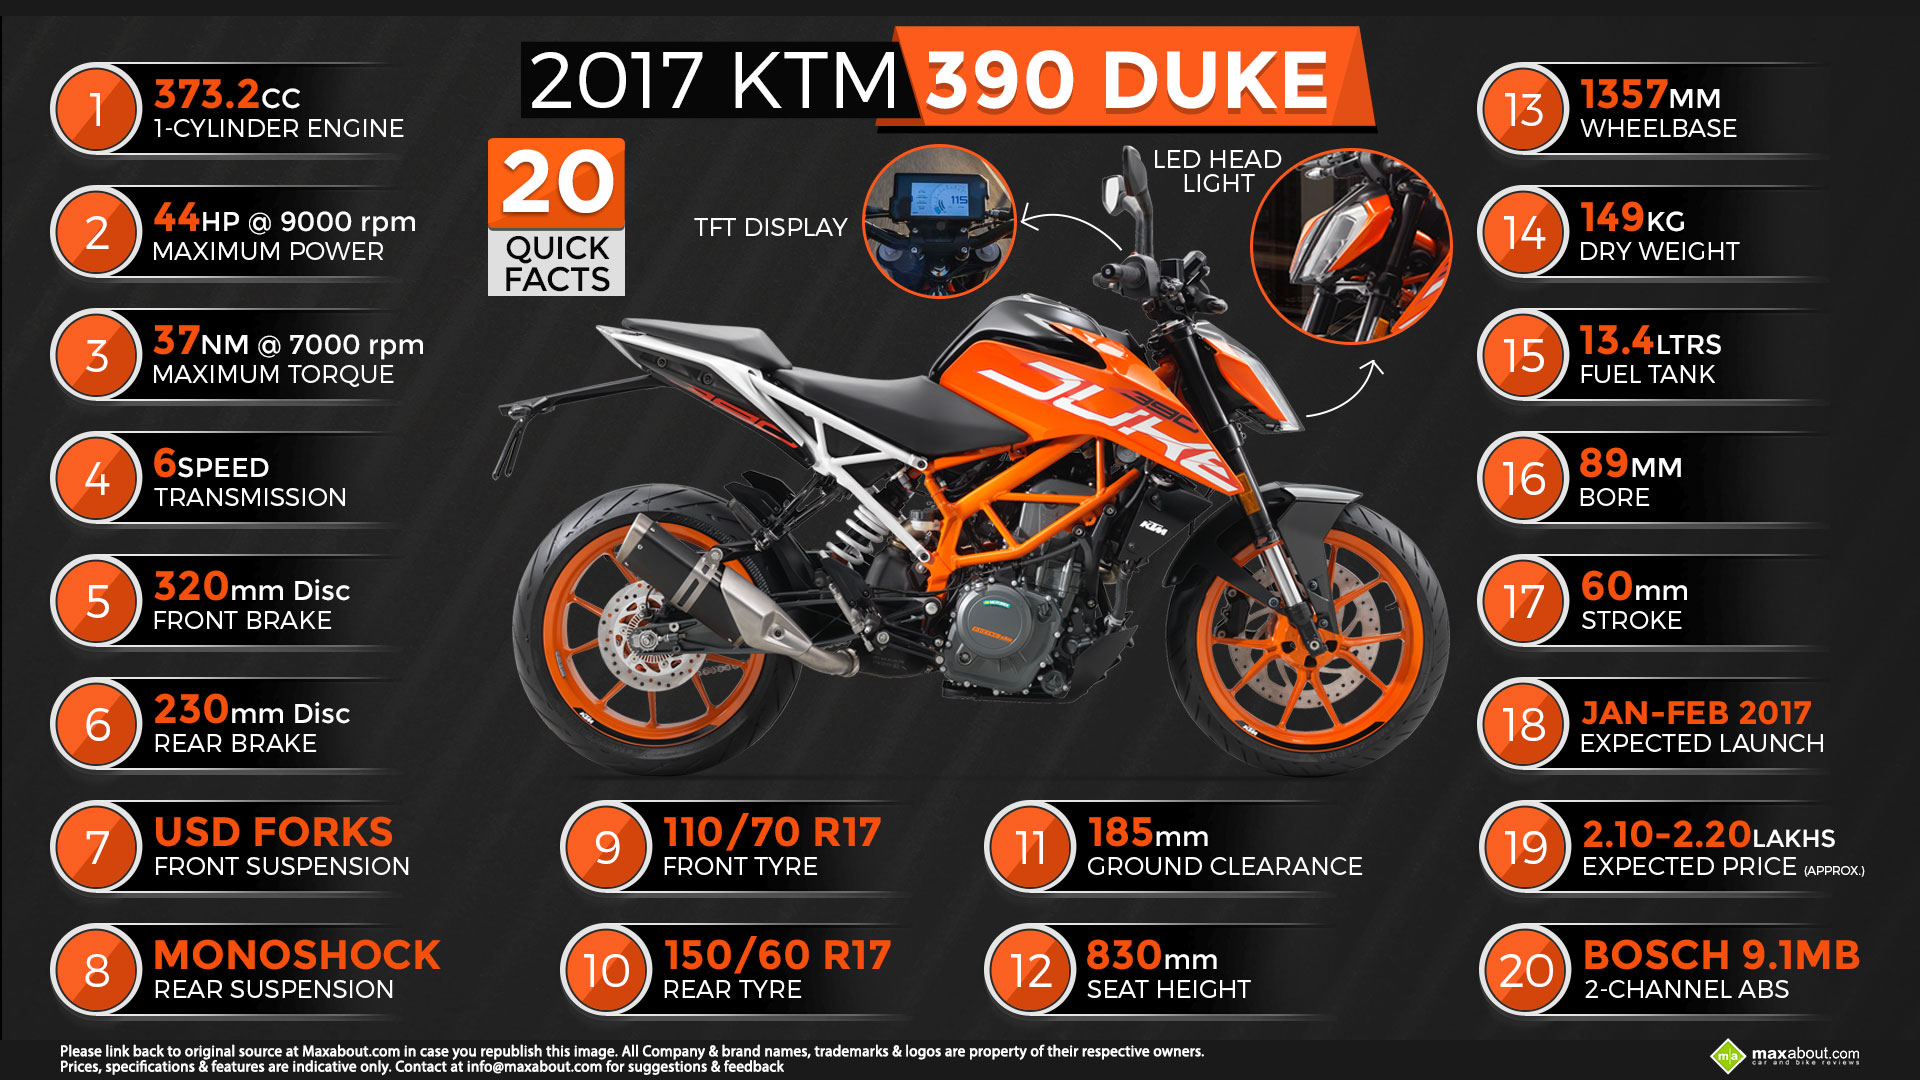 fun rc cars with 20 Quick Facts About 2017 Ktm Duke 390 on 2017 Lexus Ls460 Review in addition Rc Brushed Motor Vs Brushless Motor as well Barbie Club Chelsea Doll Assorted furthermore 2015 Hennessey Venom F5 likewise Losi Announces 4 New Rtrs In 118 110 124 Scale.